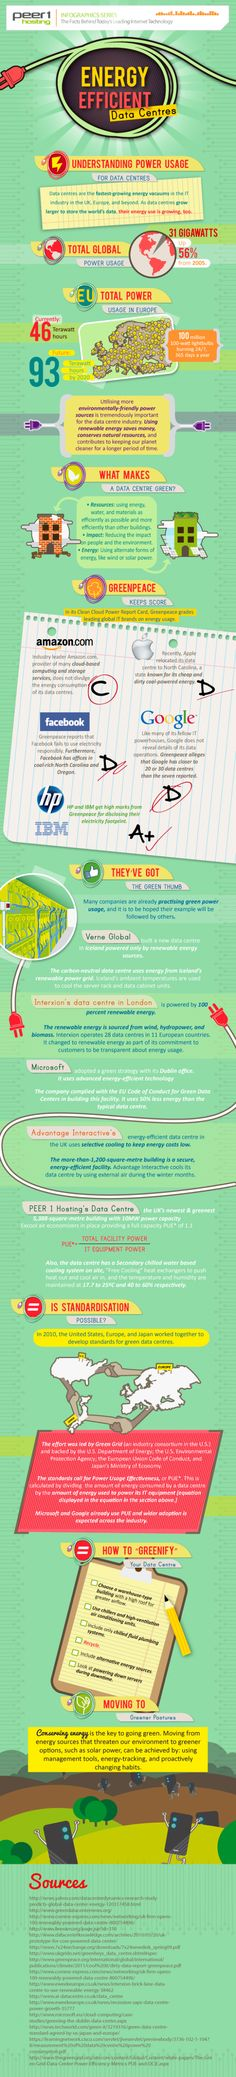 1000 Images About Energy Efficiency In Data Center On